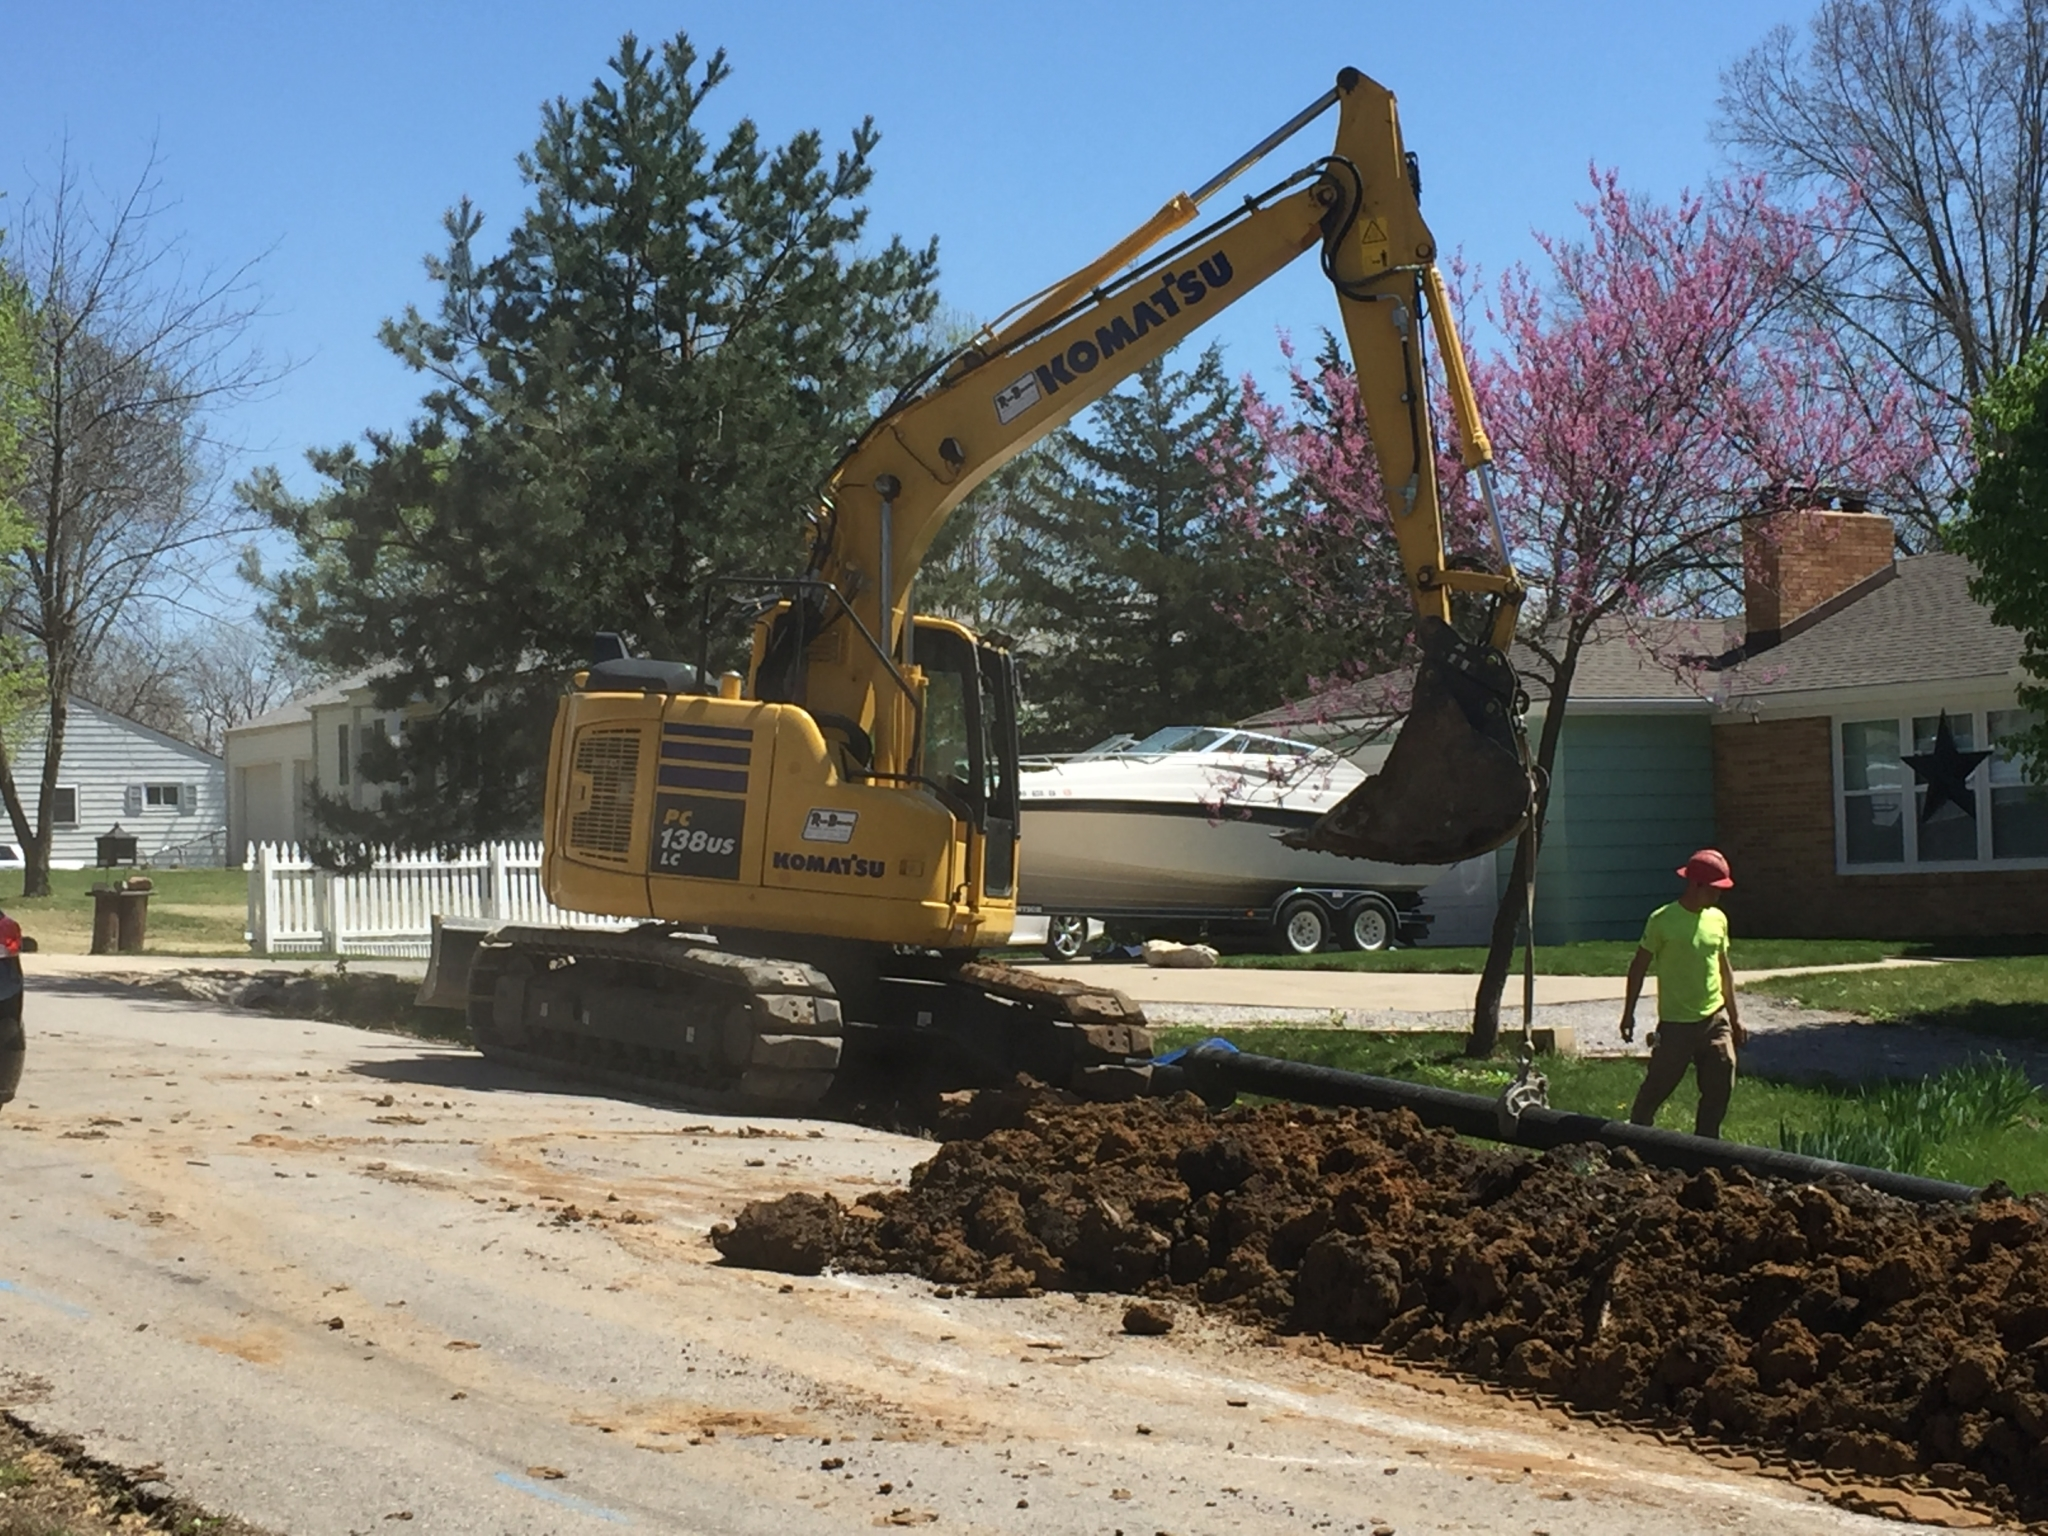 According to KC Water, it has saved about $22 million in potential repairs because of its proactive water main replacement program.